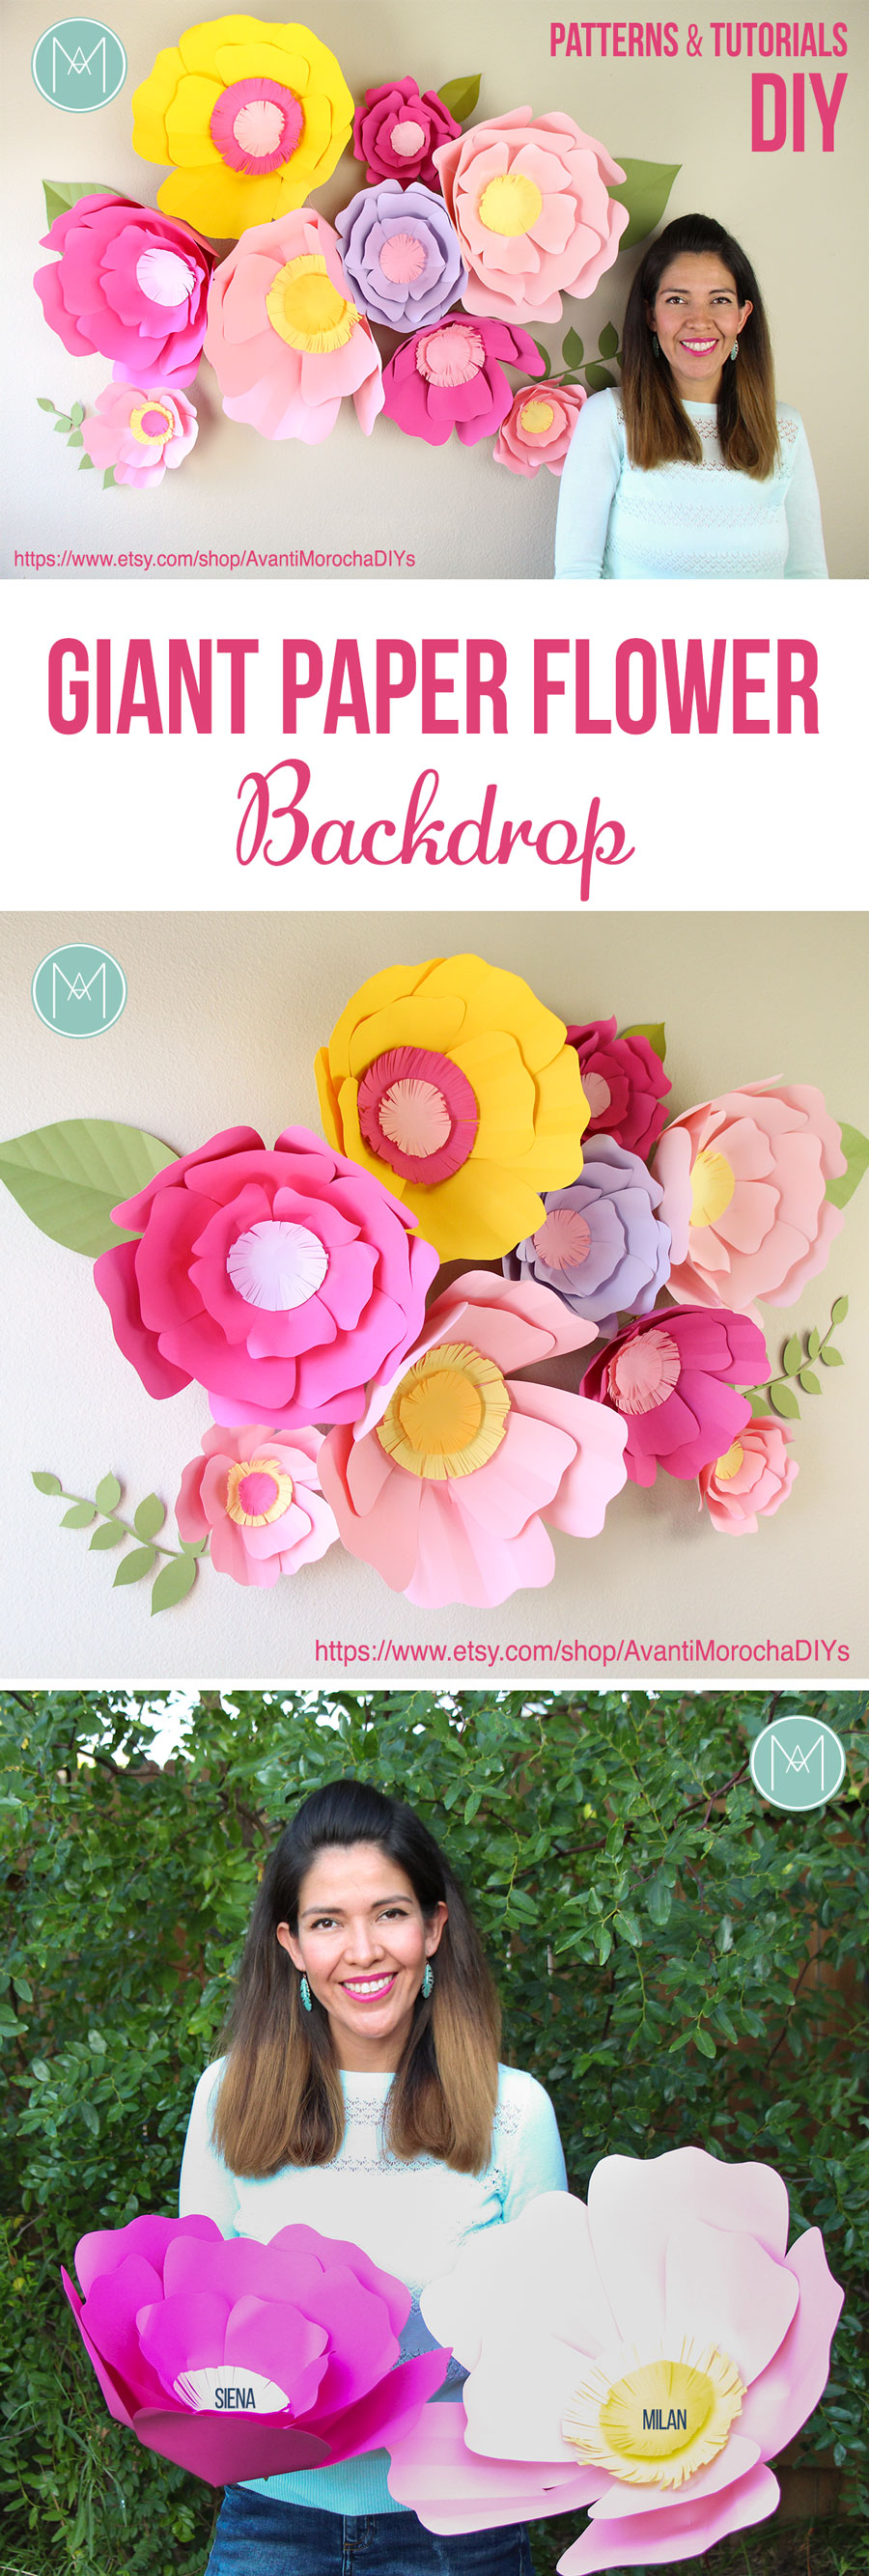 "DIY Giant Paper Flowers "" Siena and Milan"""